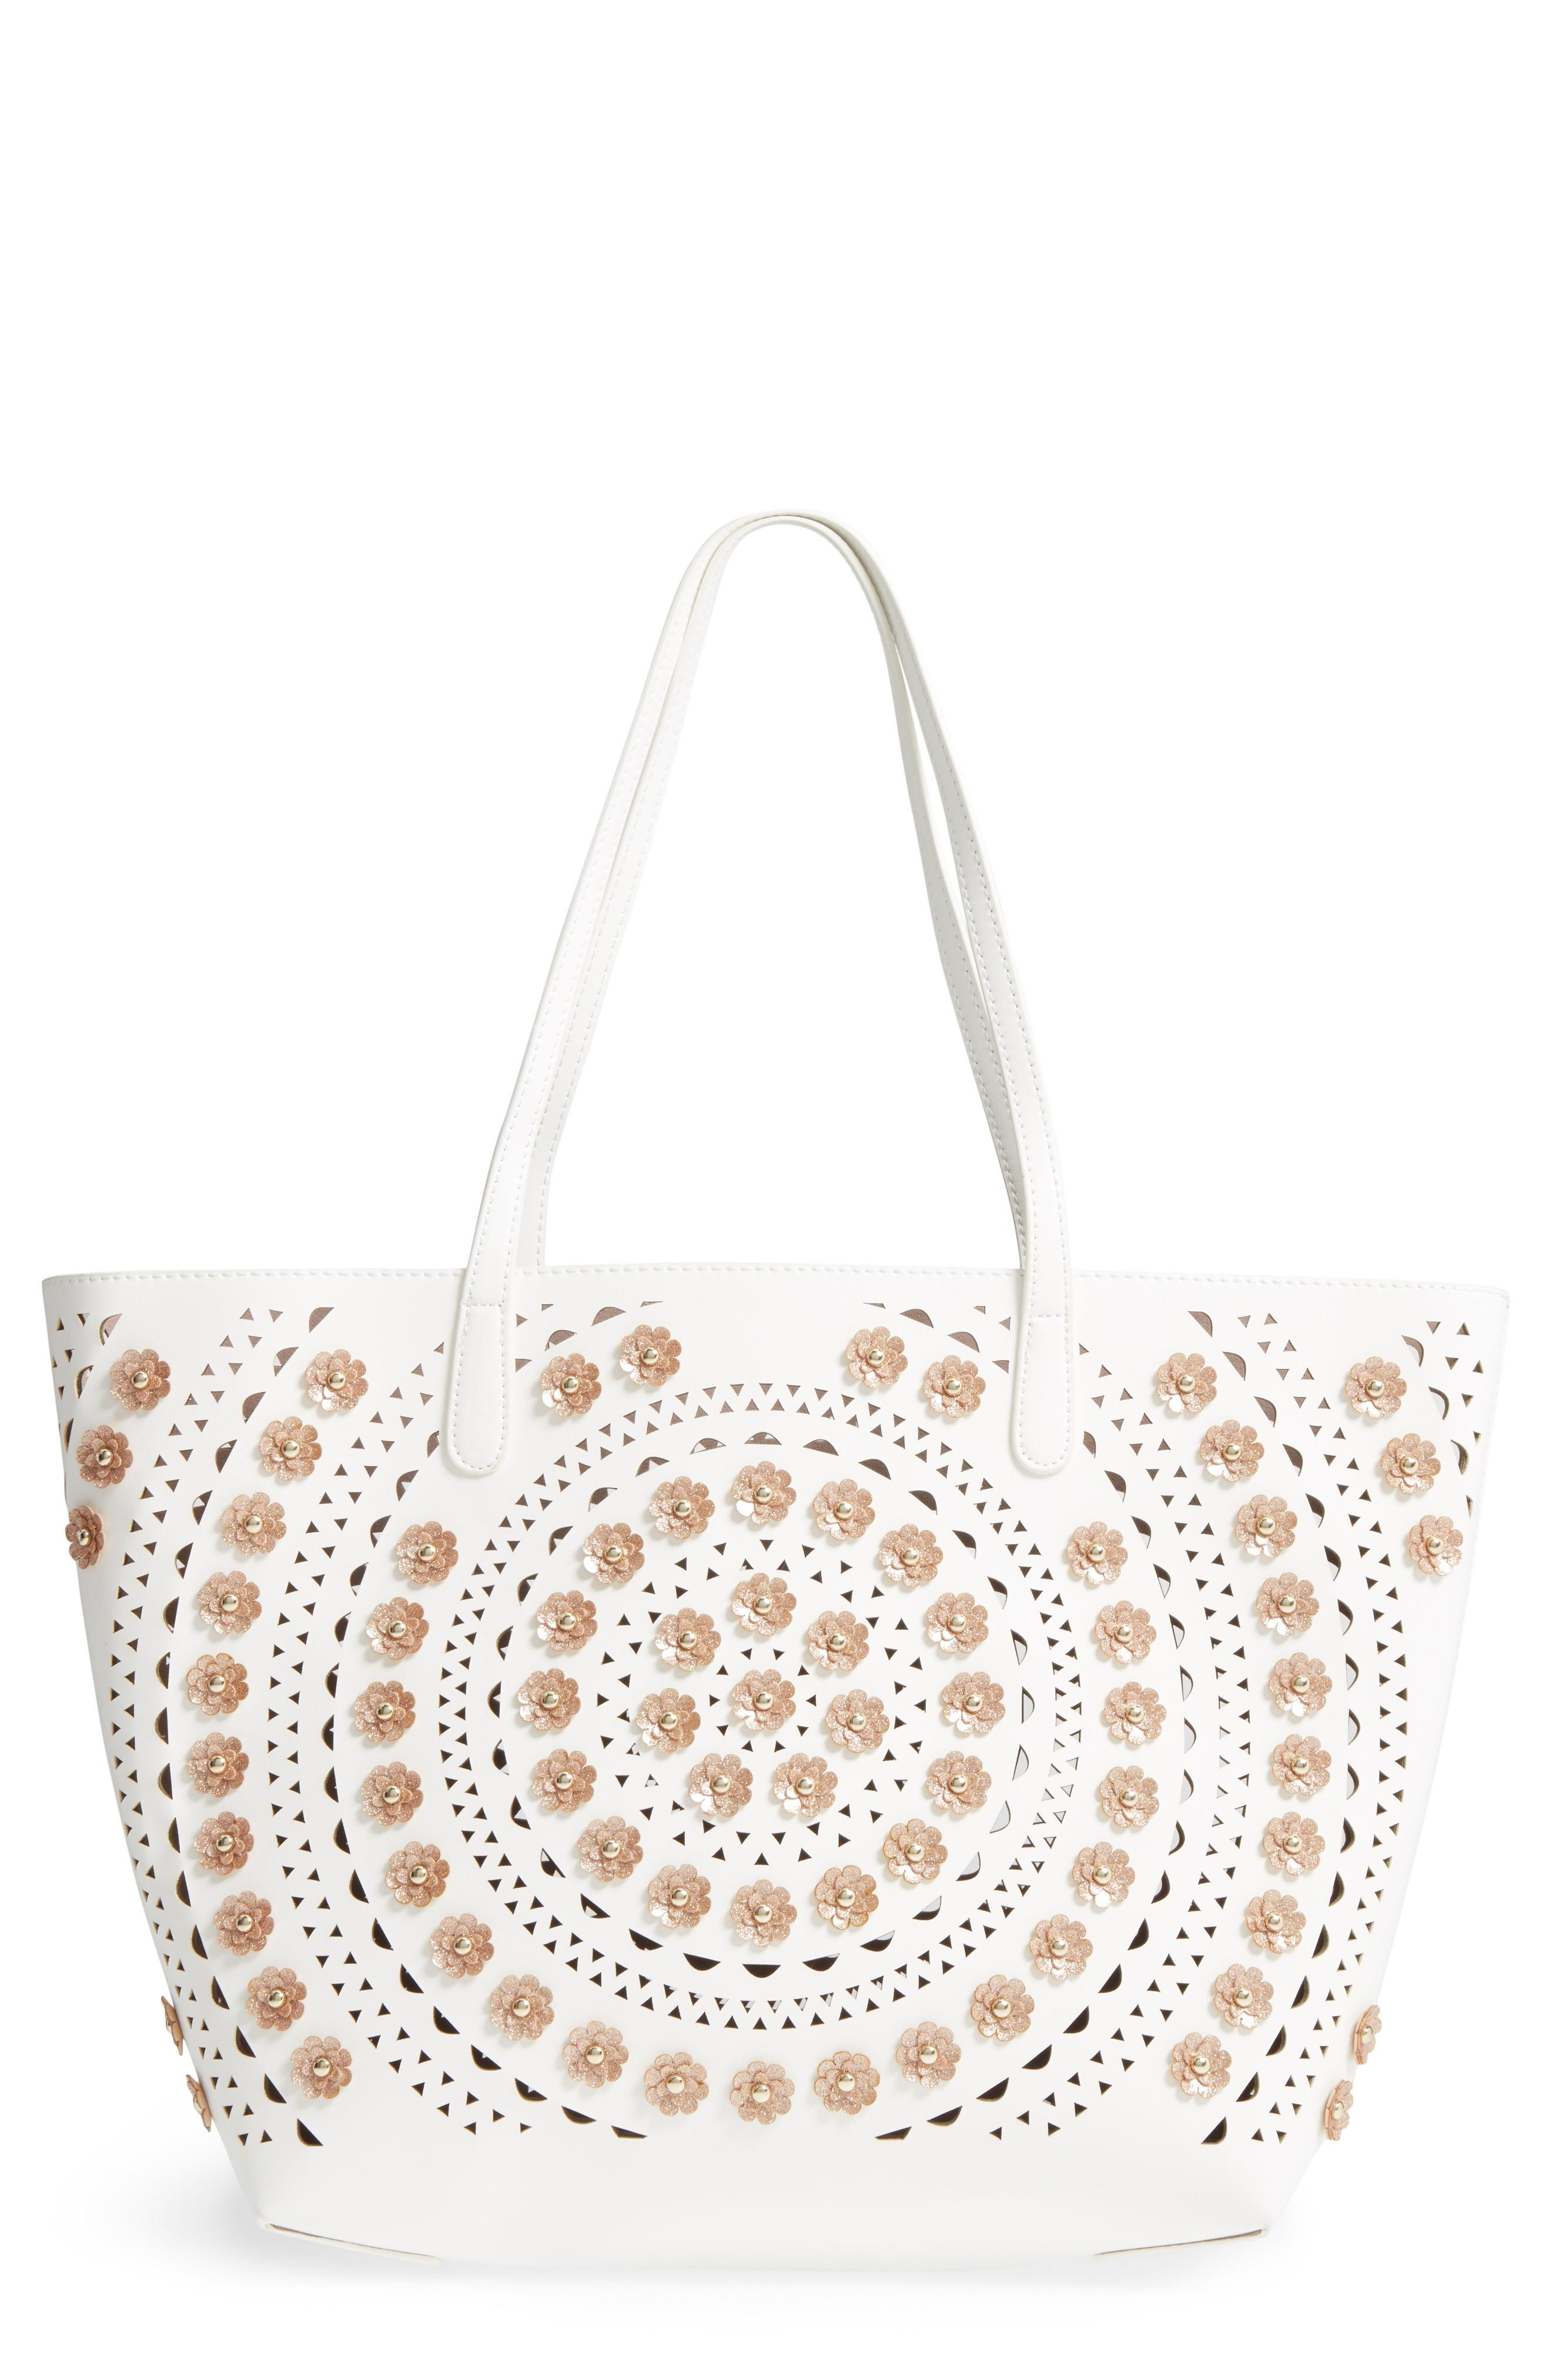 Sondra Roberts Perforated Glitter Flower Faux Leather Tote - Beige In White